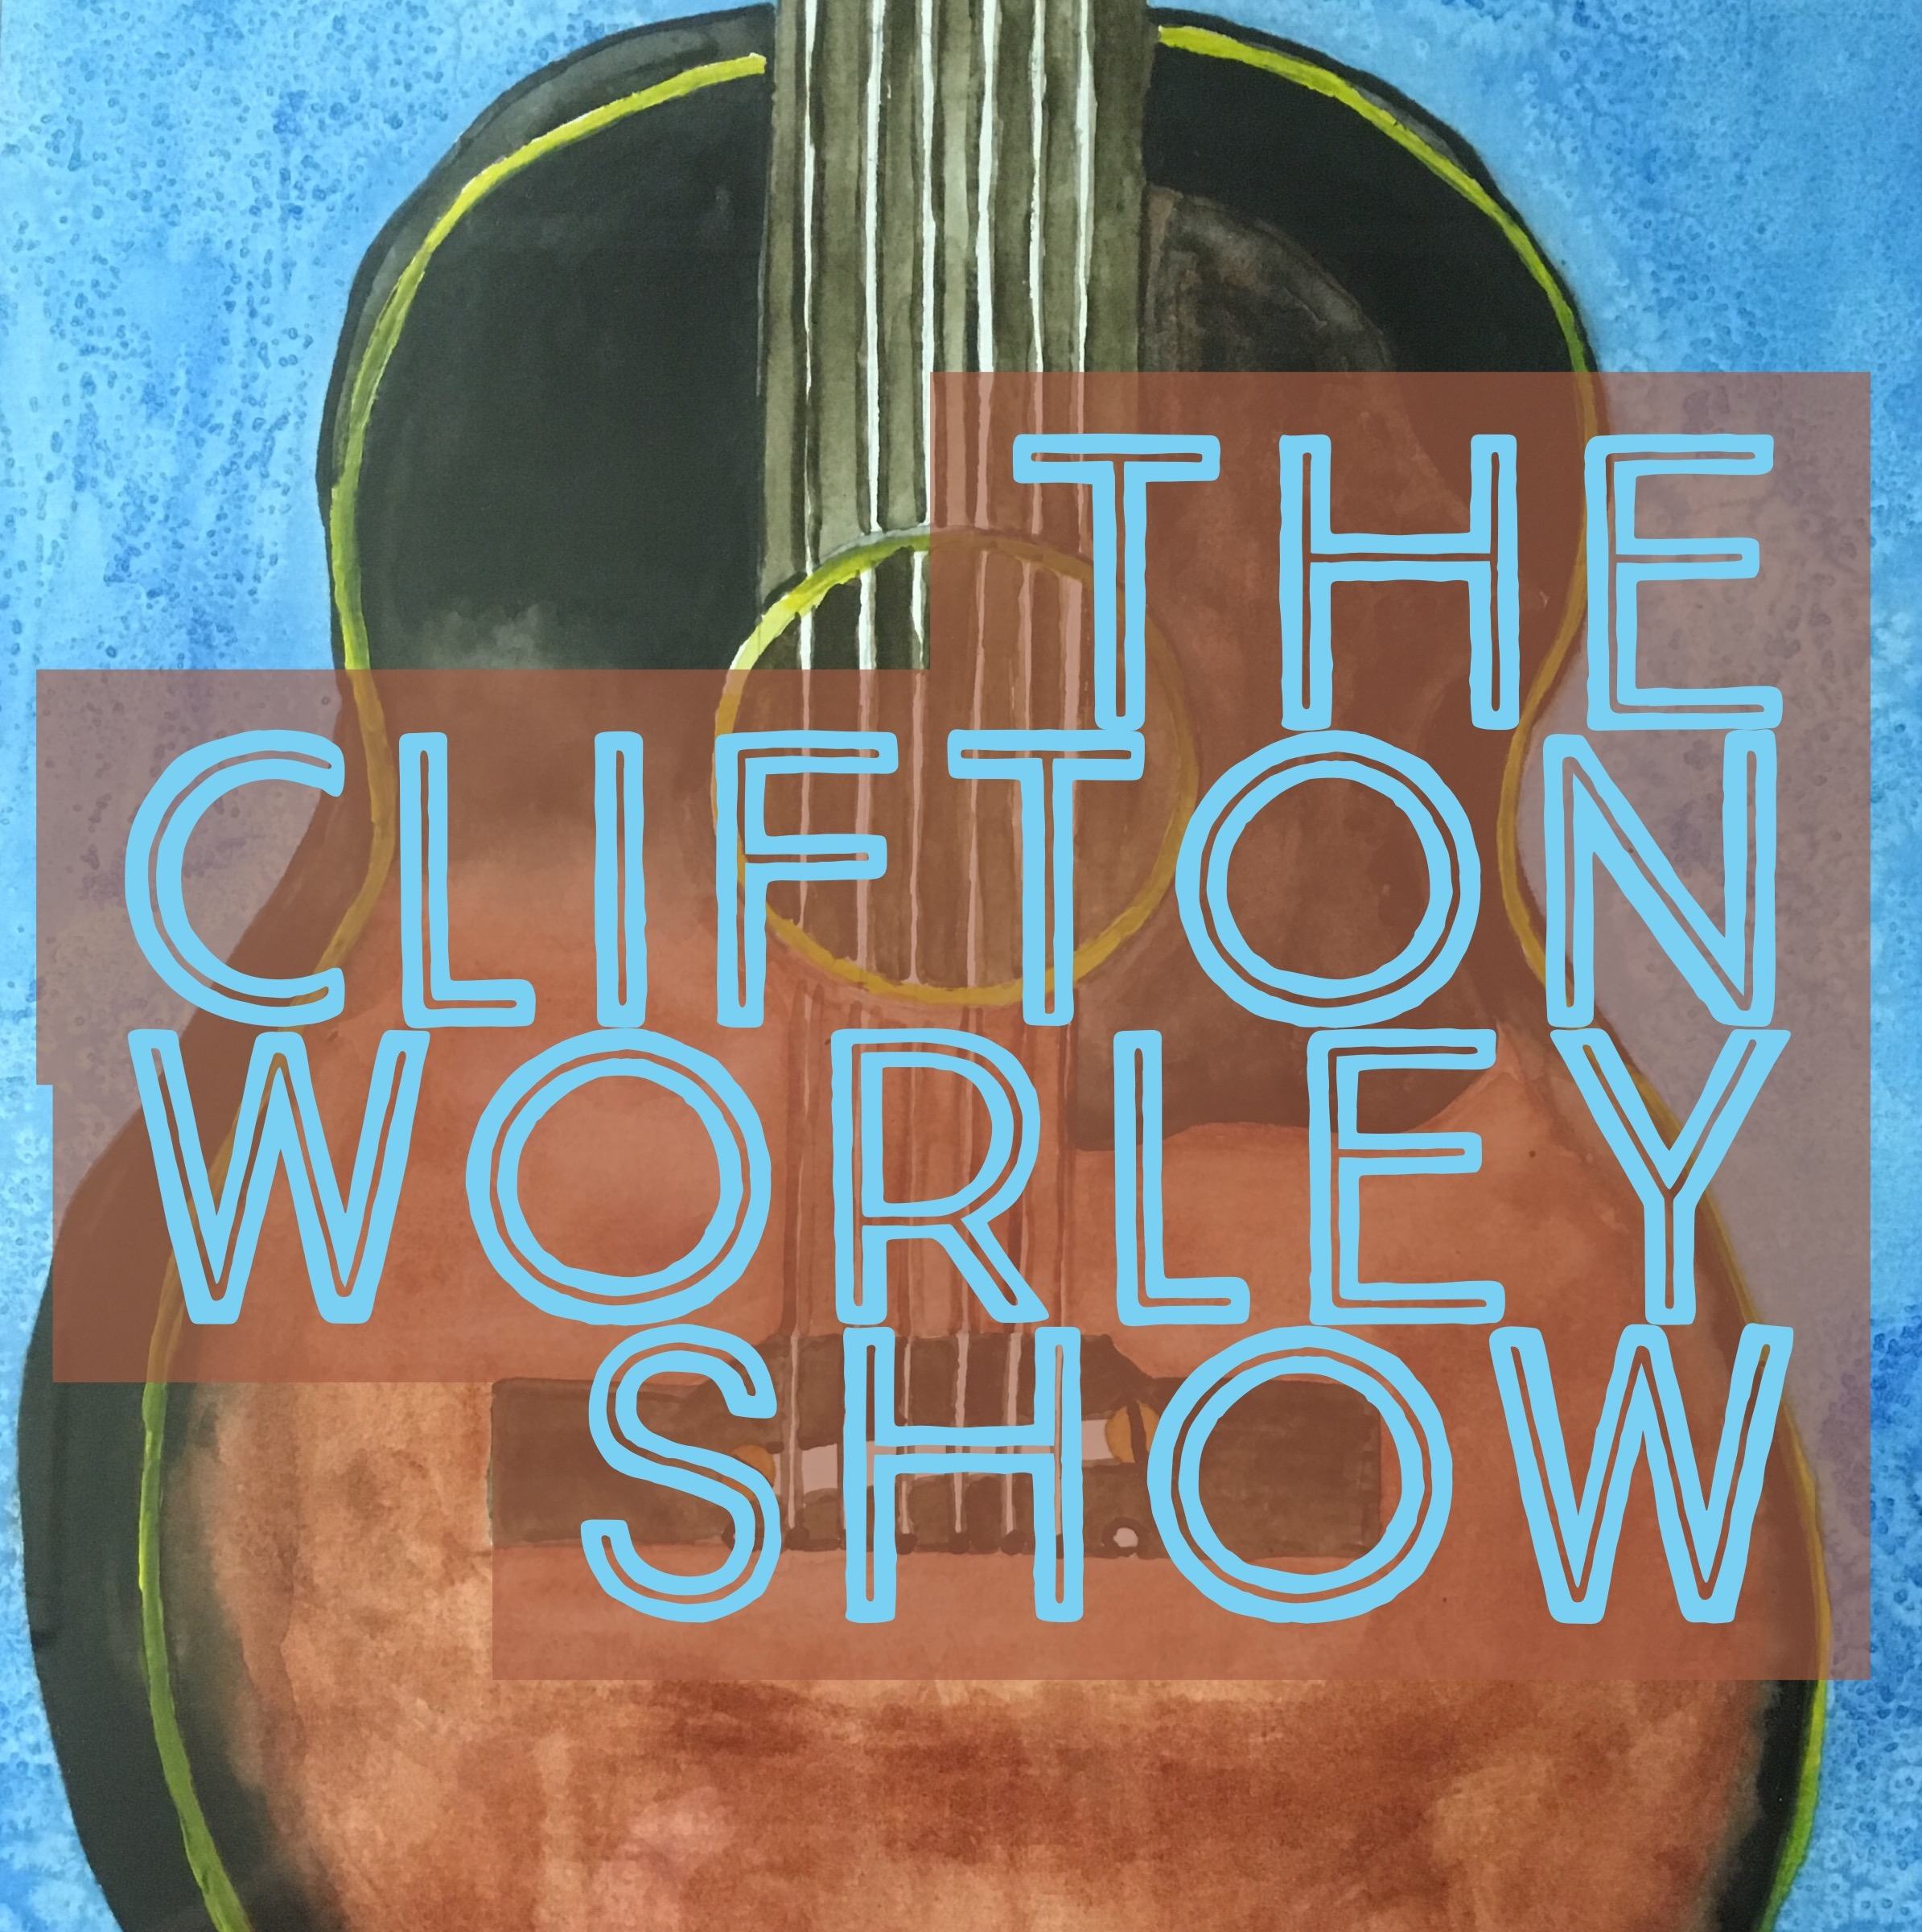 The Clifton Worley Show: Musical Journeys & Guitar Gear